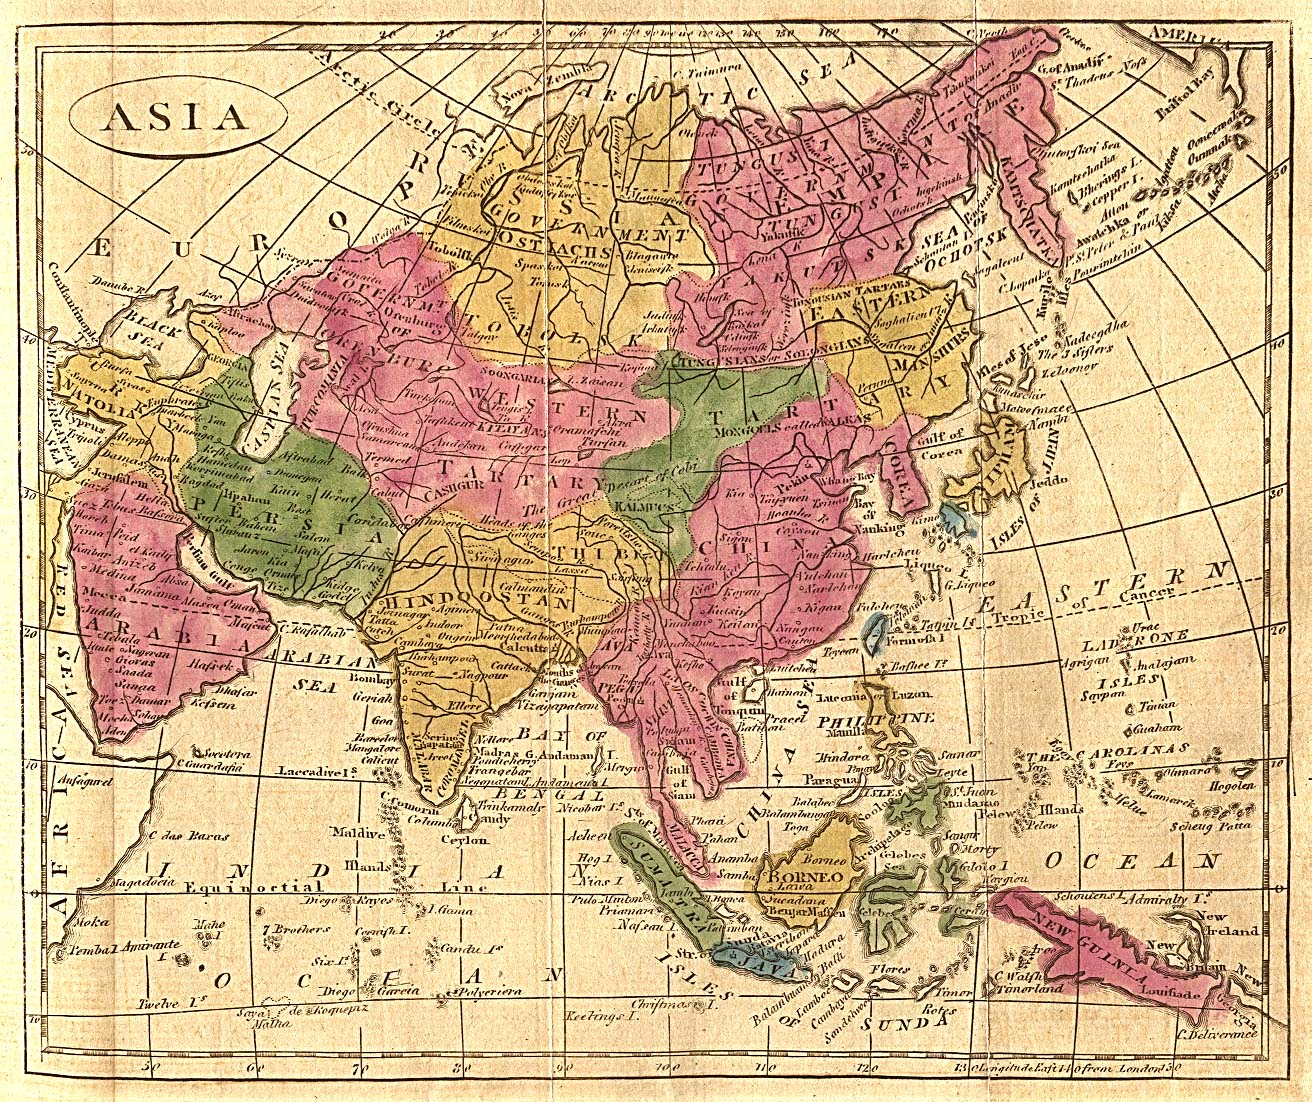 Geography Map Of Asia.Asia Historical Maps Perry Castaneda Map Collection Ut Library